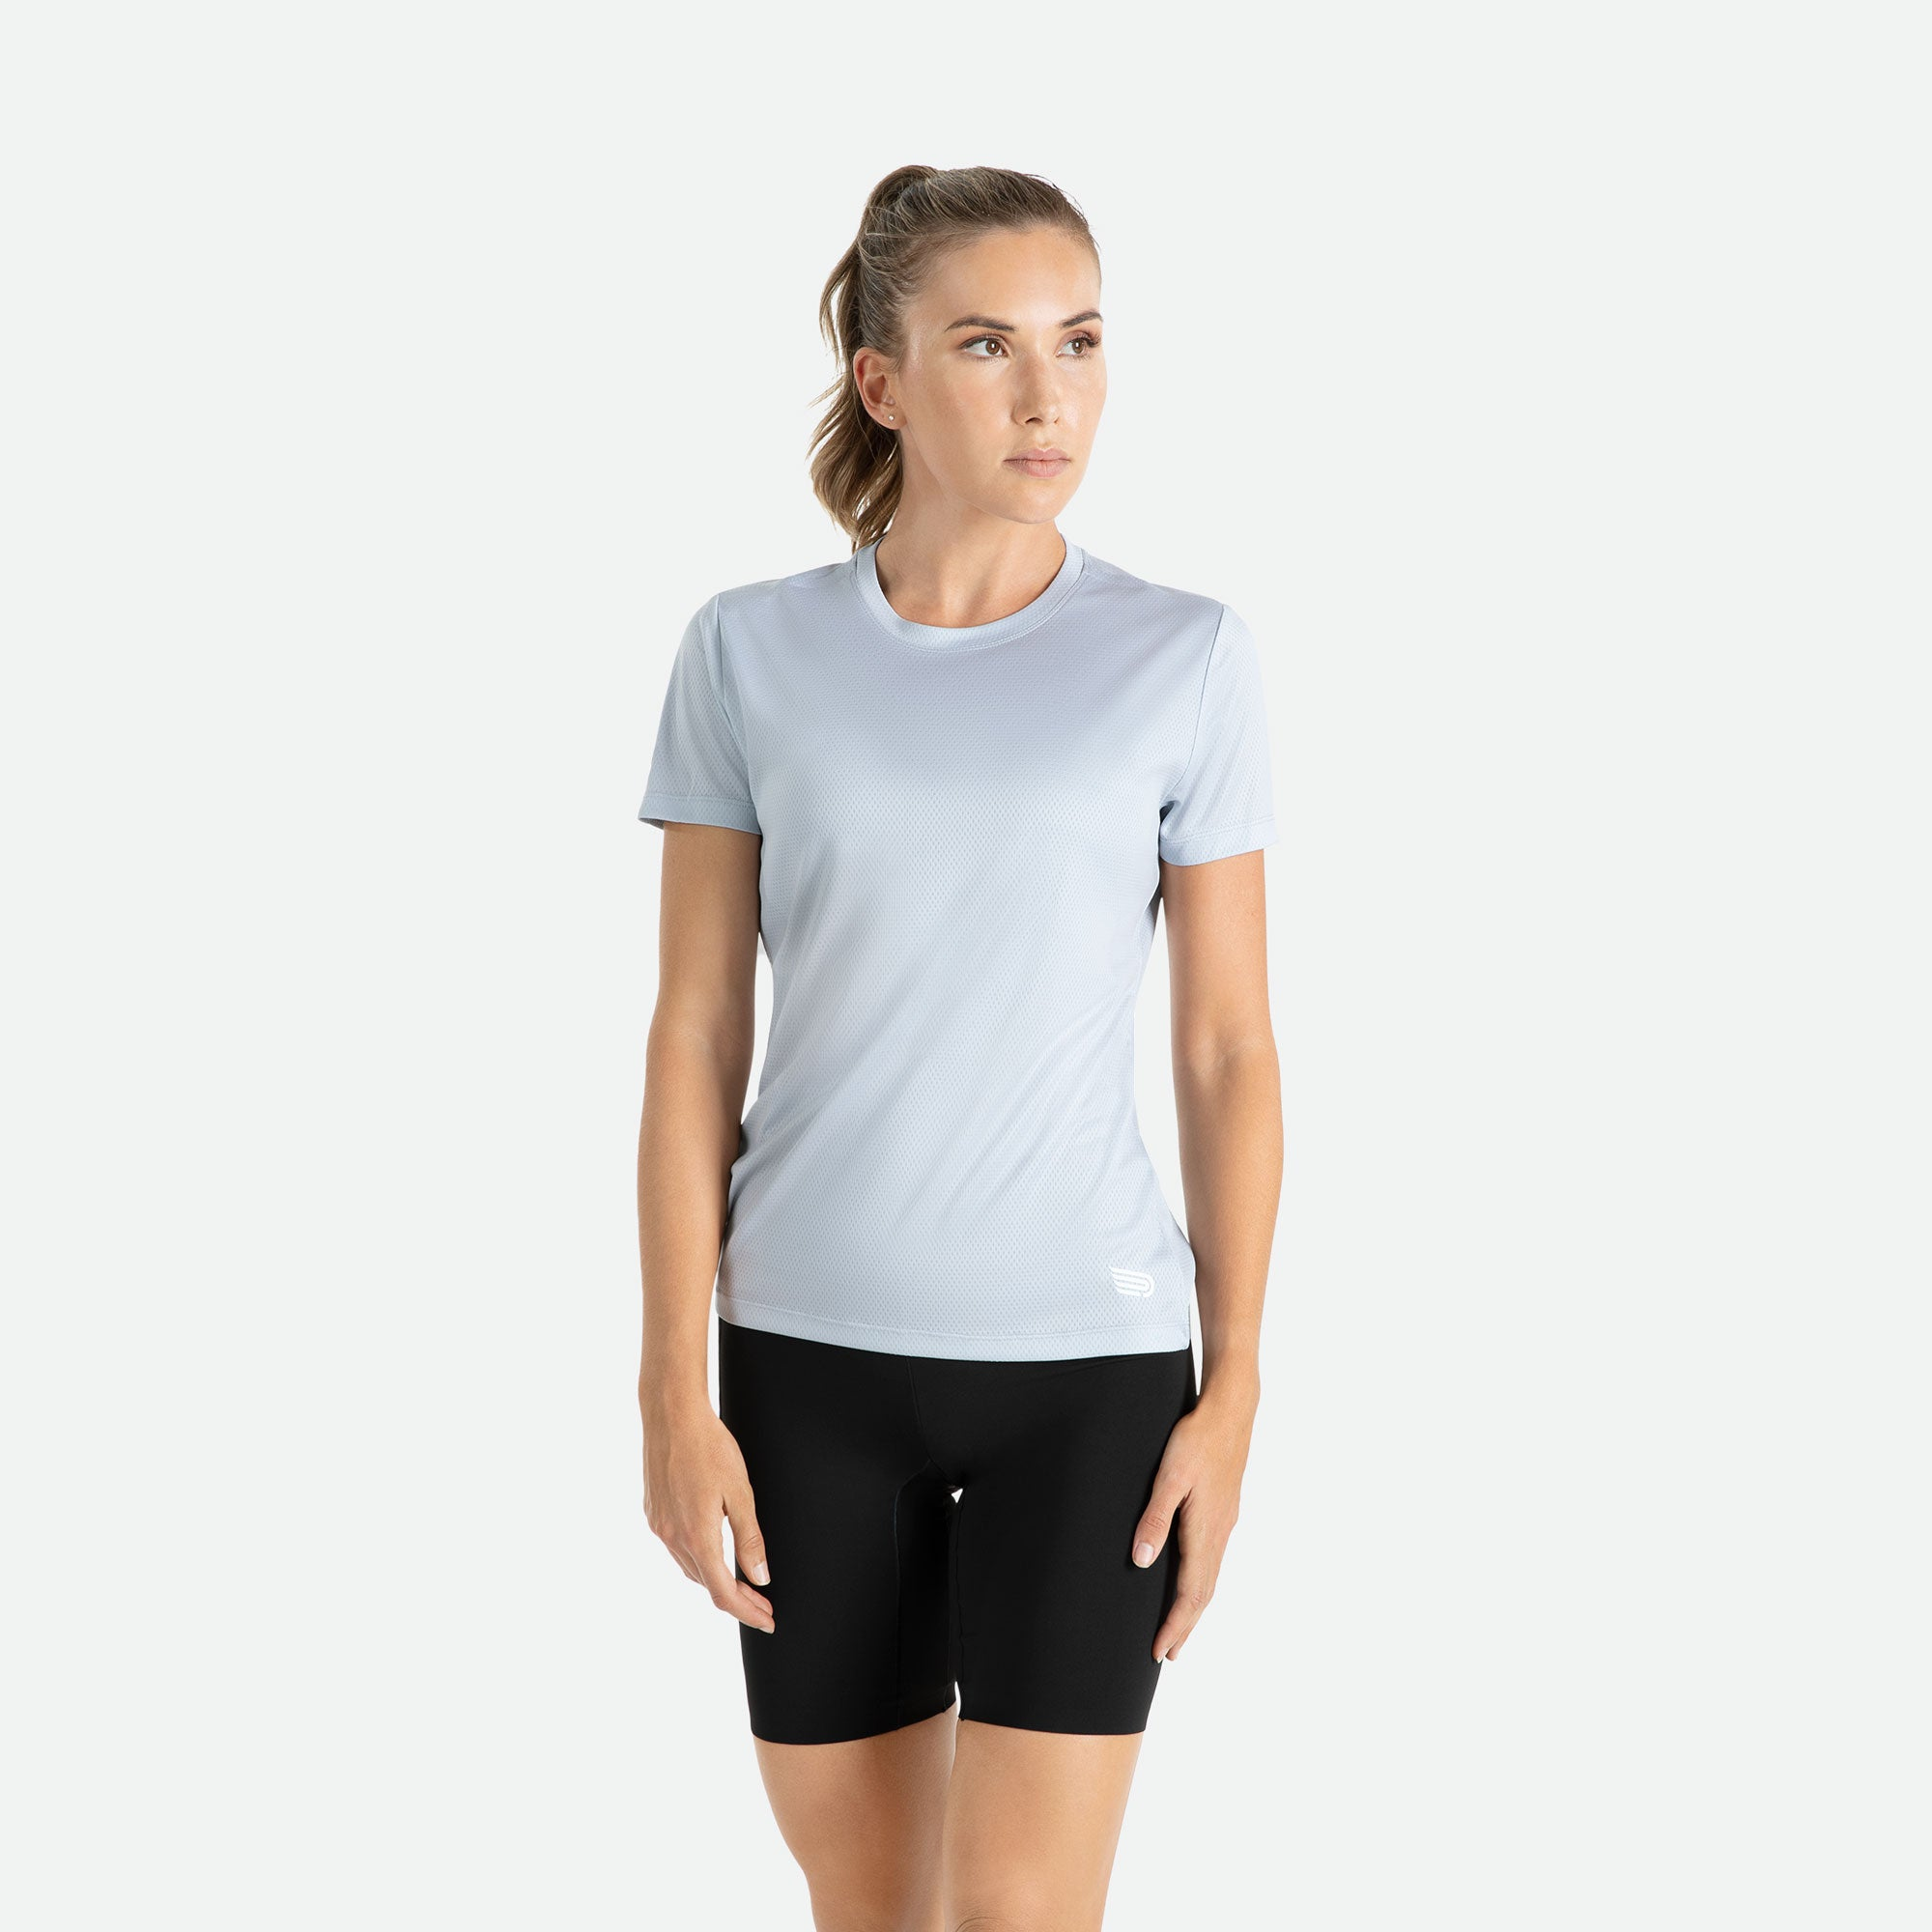 Our Pressio women's light grey Hāpai short sleeve t-shirt features EcoTECH MF fabric which has dual filament recycled polyester yarns from Unifi for superior moisture control to keep you dry.